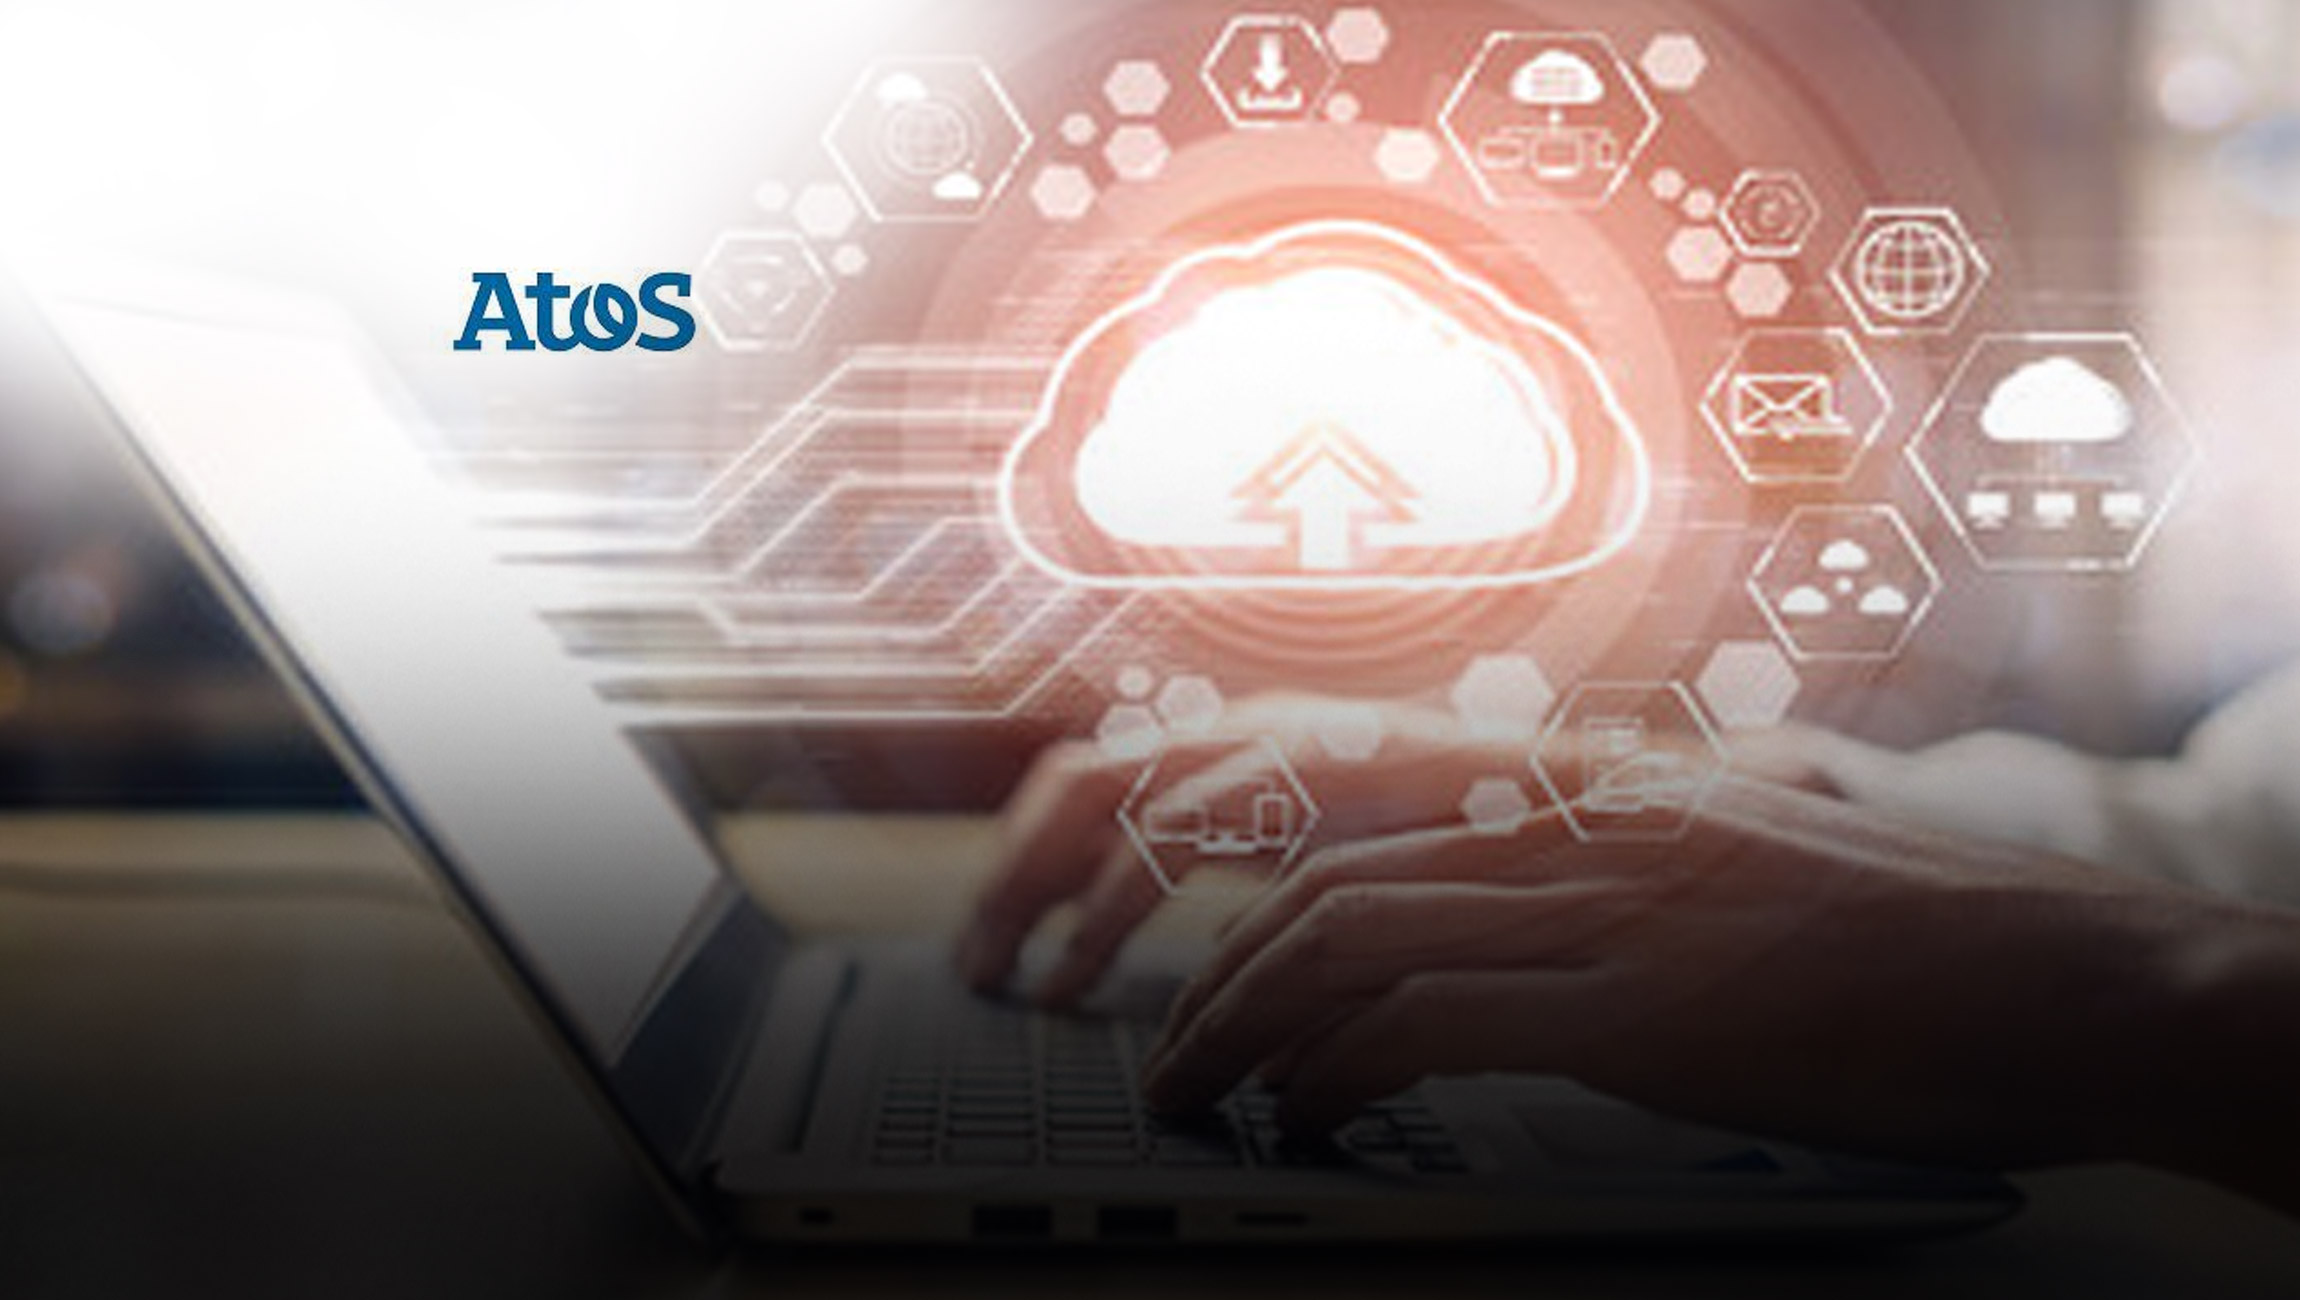 Atos confirms expertise in Cloud services with renewed recognition as a Microsoft Azure Expert Managed Service Provider